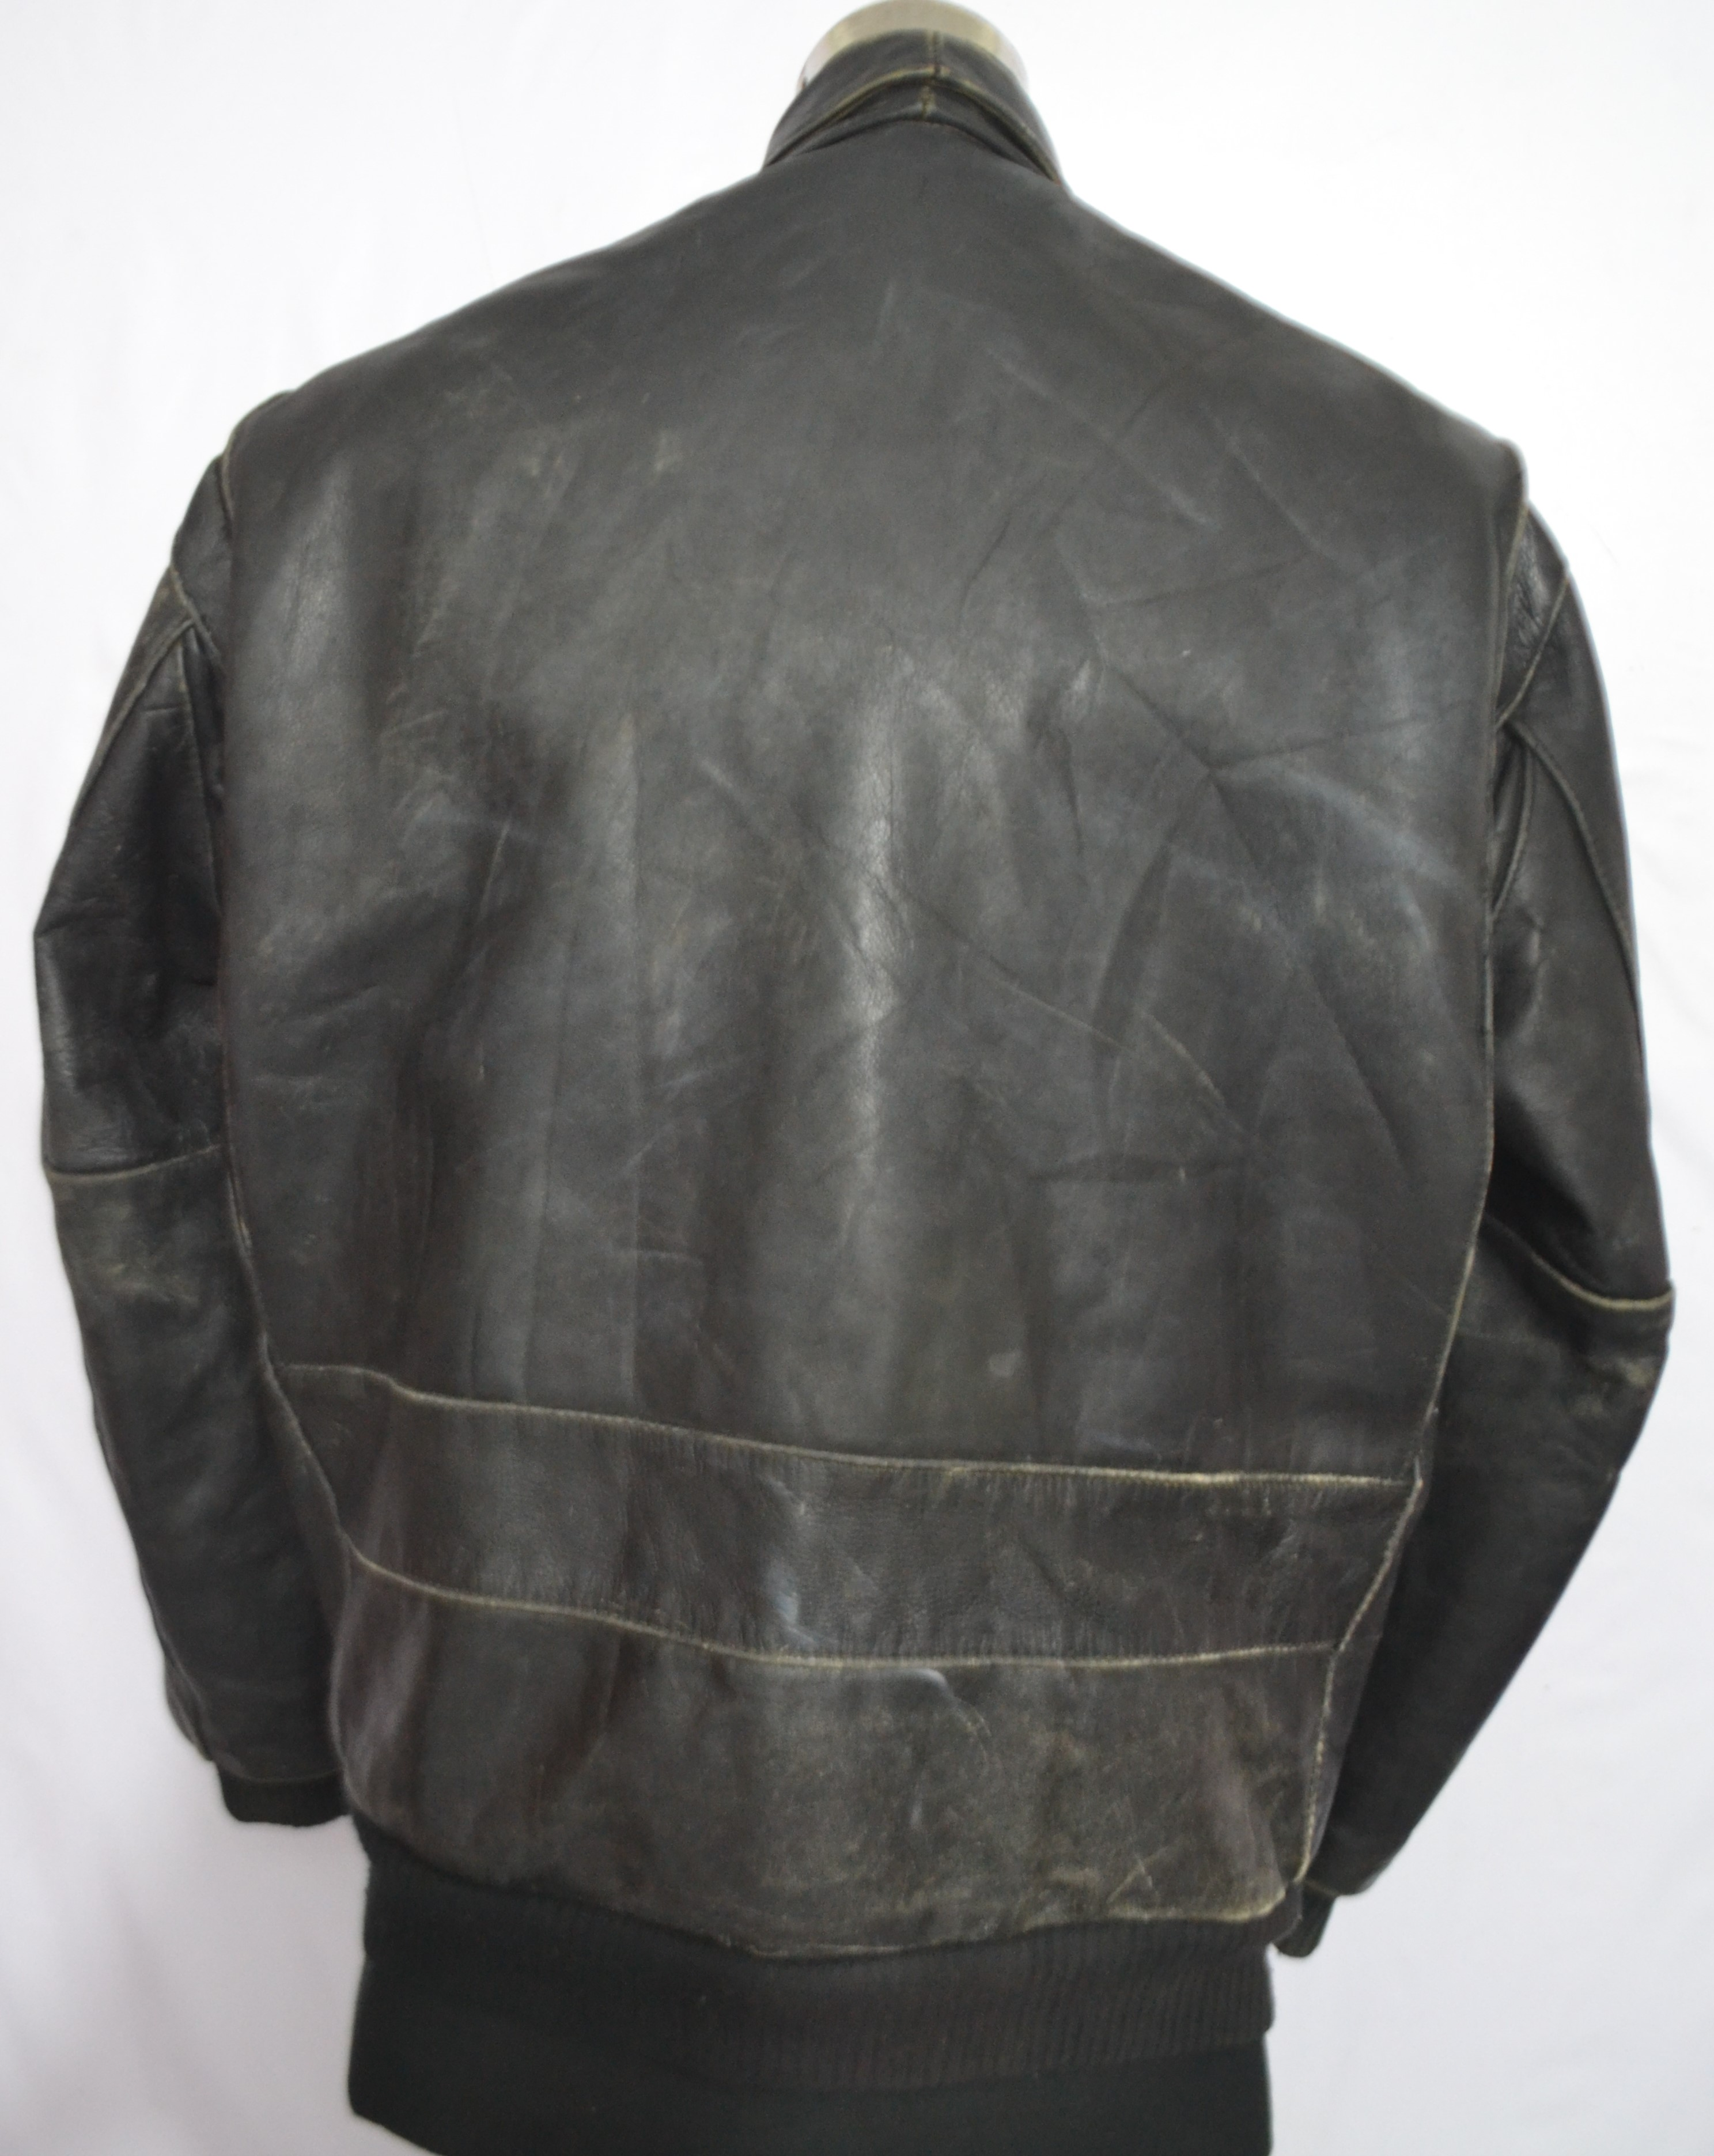 Leather jacket italy - Confezioni S G Vera Pelle Men S Type A2 Thick Leather Jacket Made In Italy D30 2 3 Kg